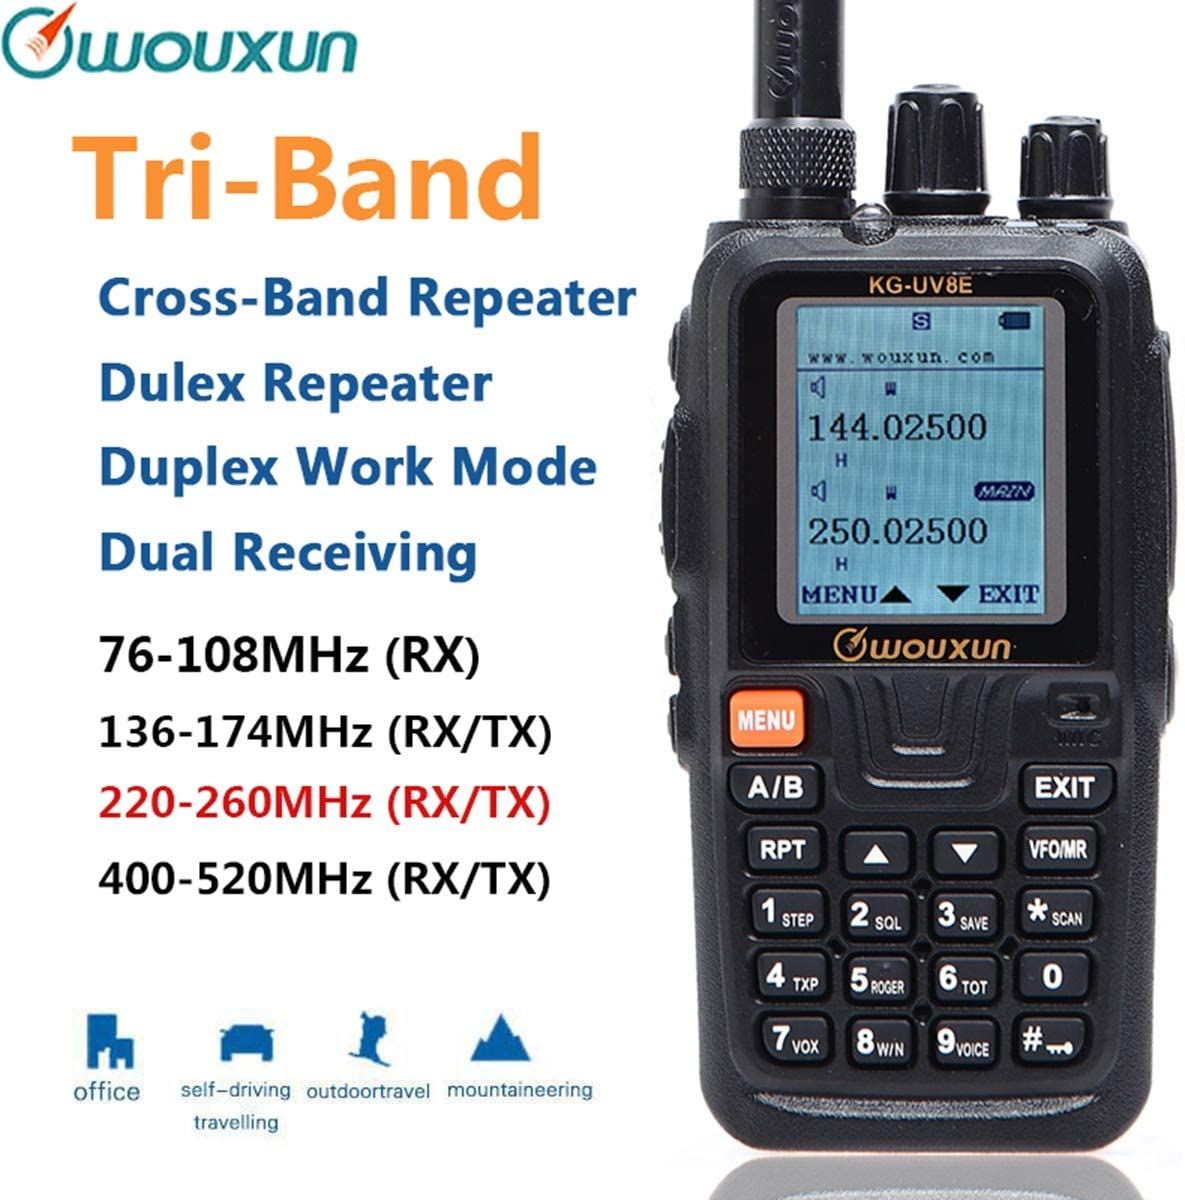 Wouxun KG-UV8E Tri-Band 136-174 220-260 400-520MHz Cross Band Repeater Duplex Work Mode 999CH VOX SOS CTCSS DCS Ham Two Way Radio